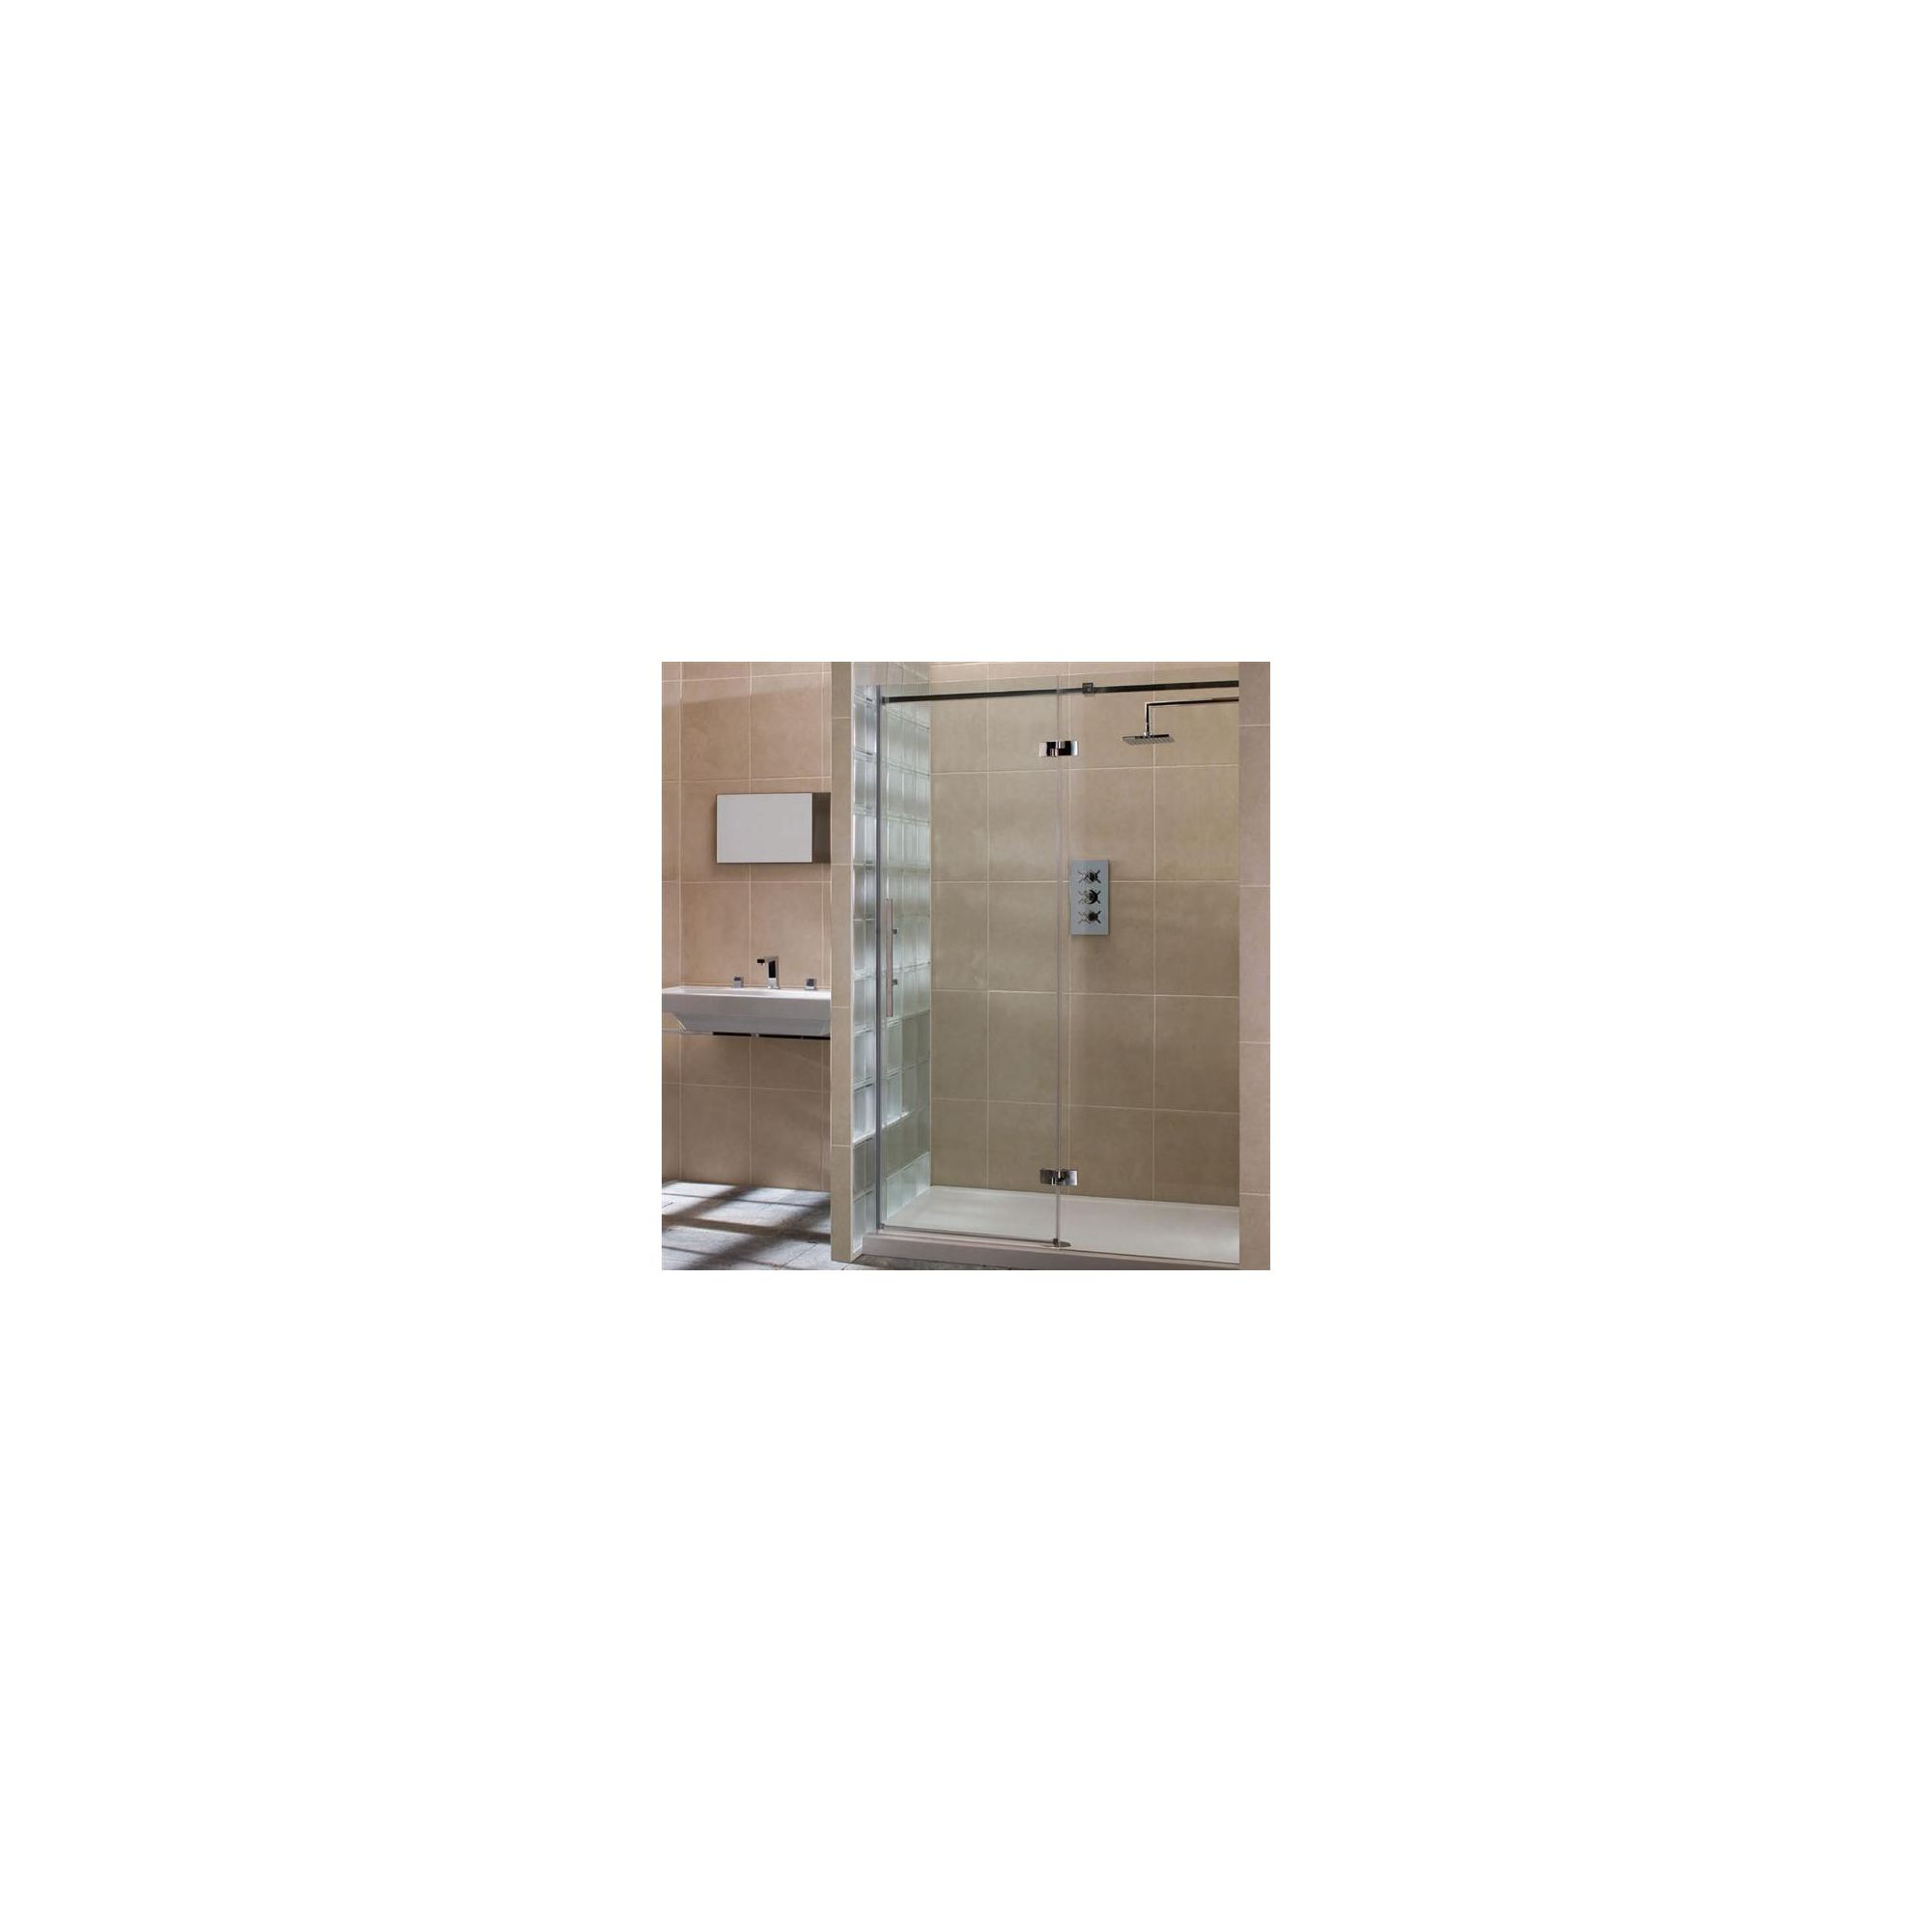 Merlyn Vivid Nine Hinged Door Alcove Shower Enclosure with Inline Panel, 1200mm x 900mm, Right Handed, Low Profile Tray, 8mm Glass at Tesco Direct